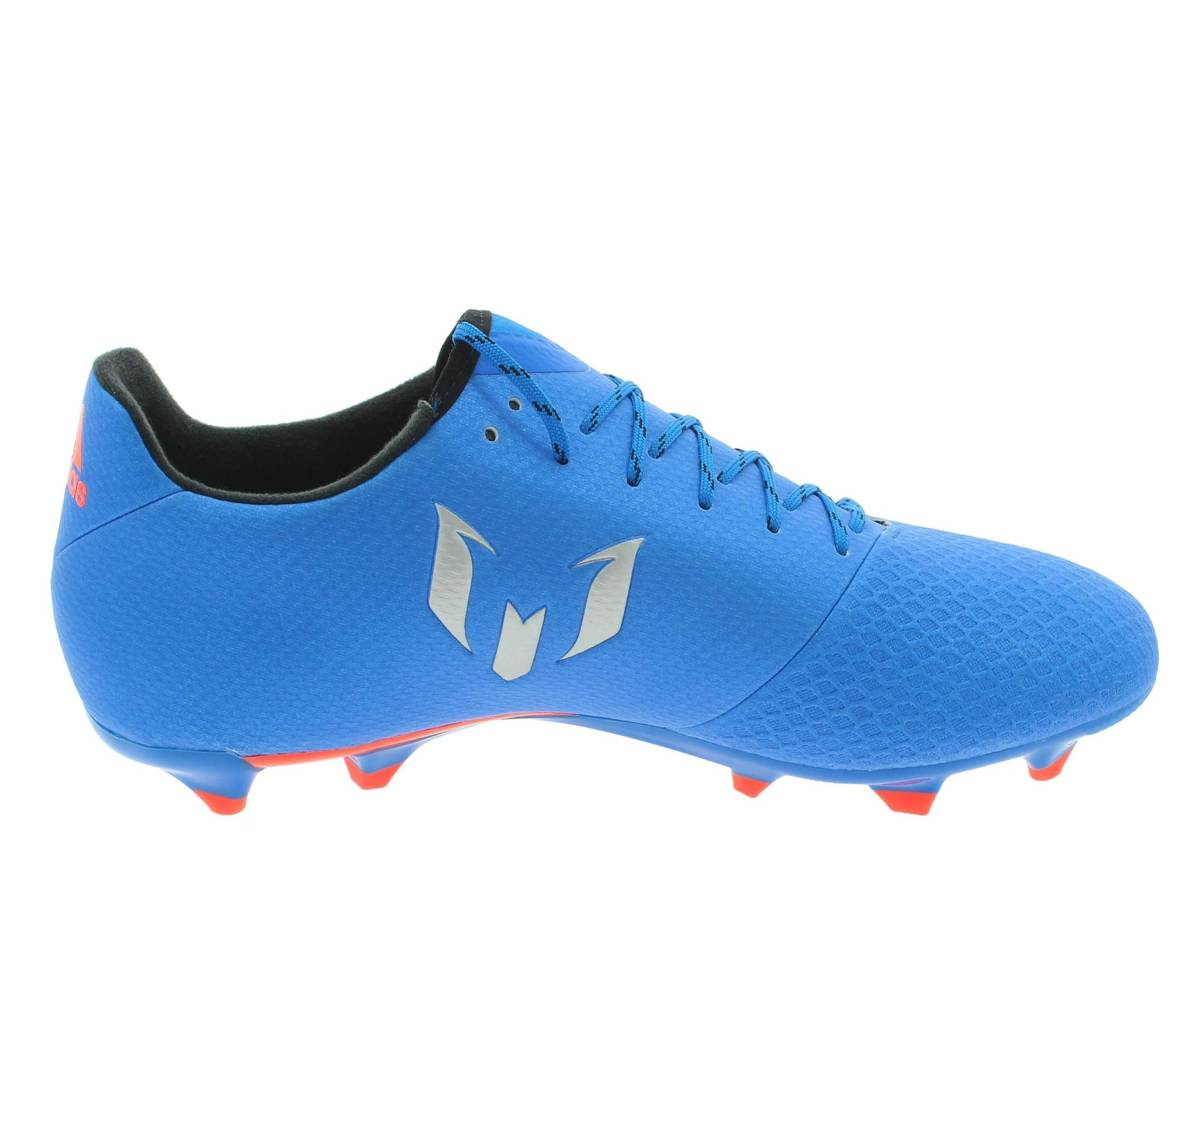 Adidas Messi 16 3 Fg Men Sports And Games Ltd